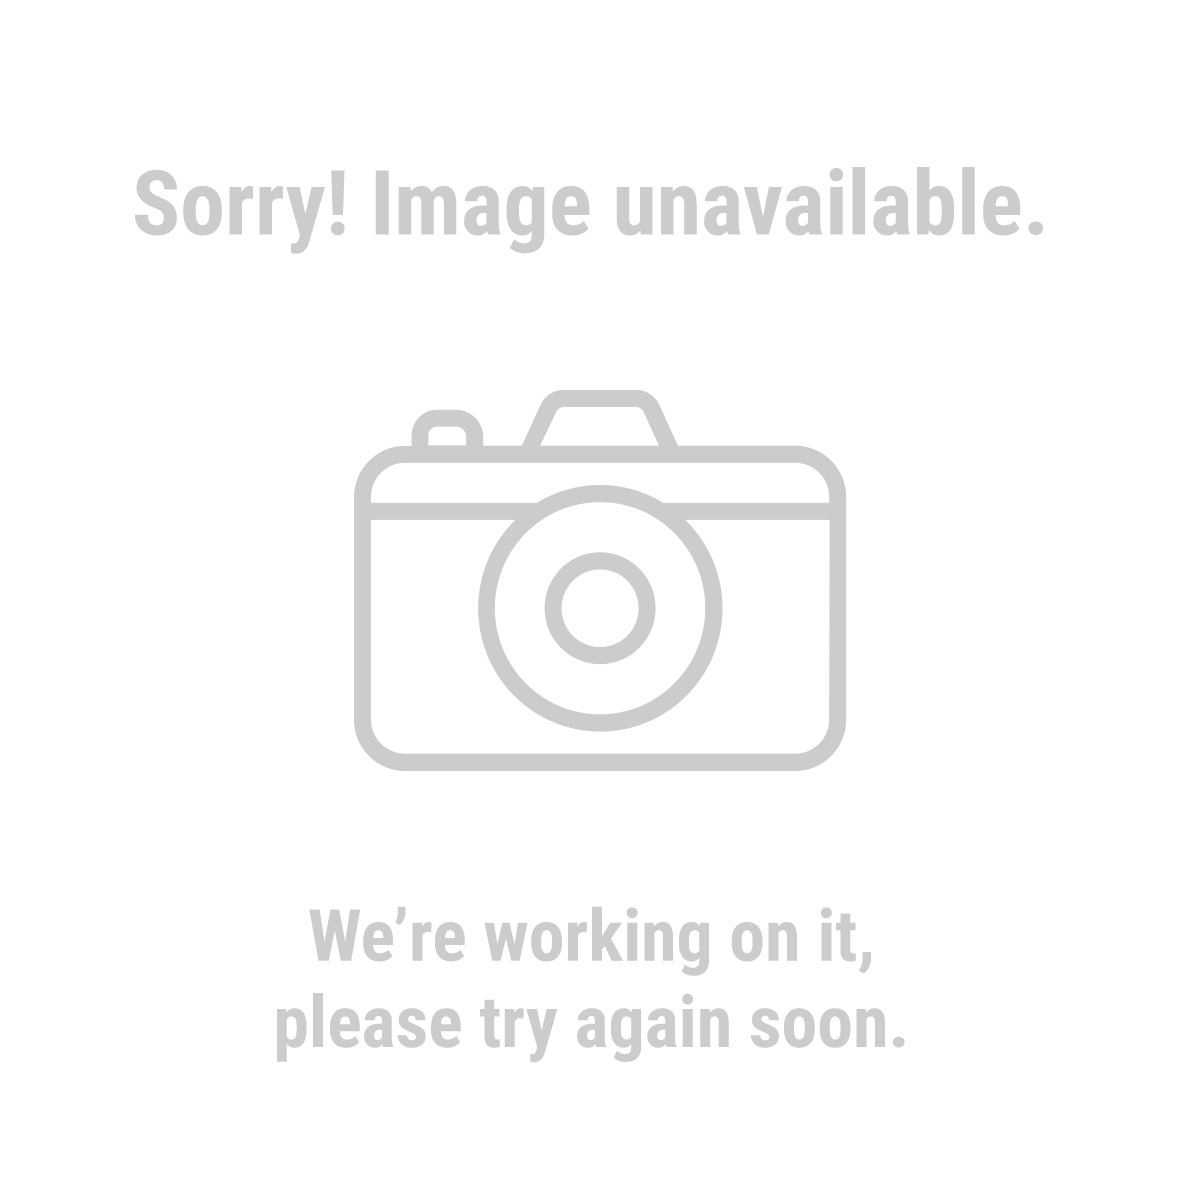 Warrior 69073 18 Piece Carbon Steel Hole Saw Set